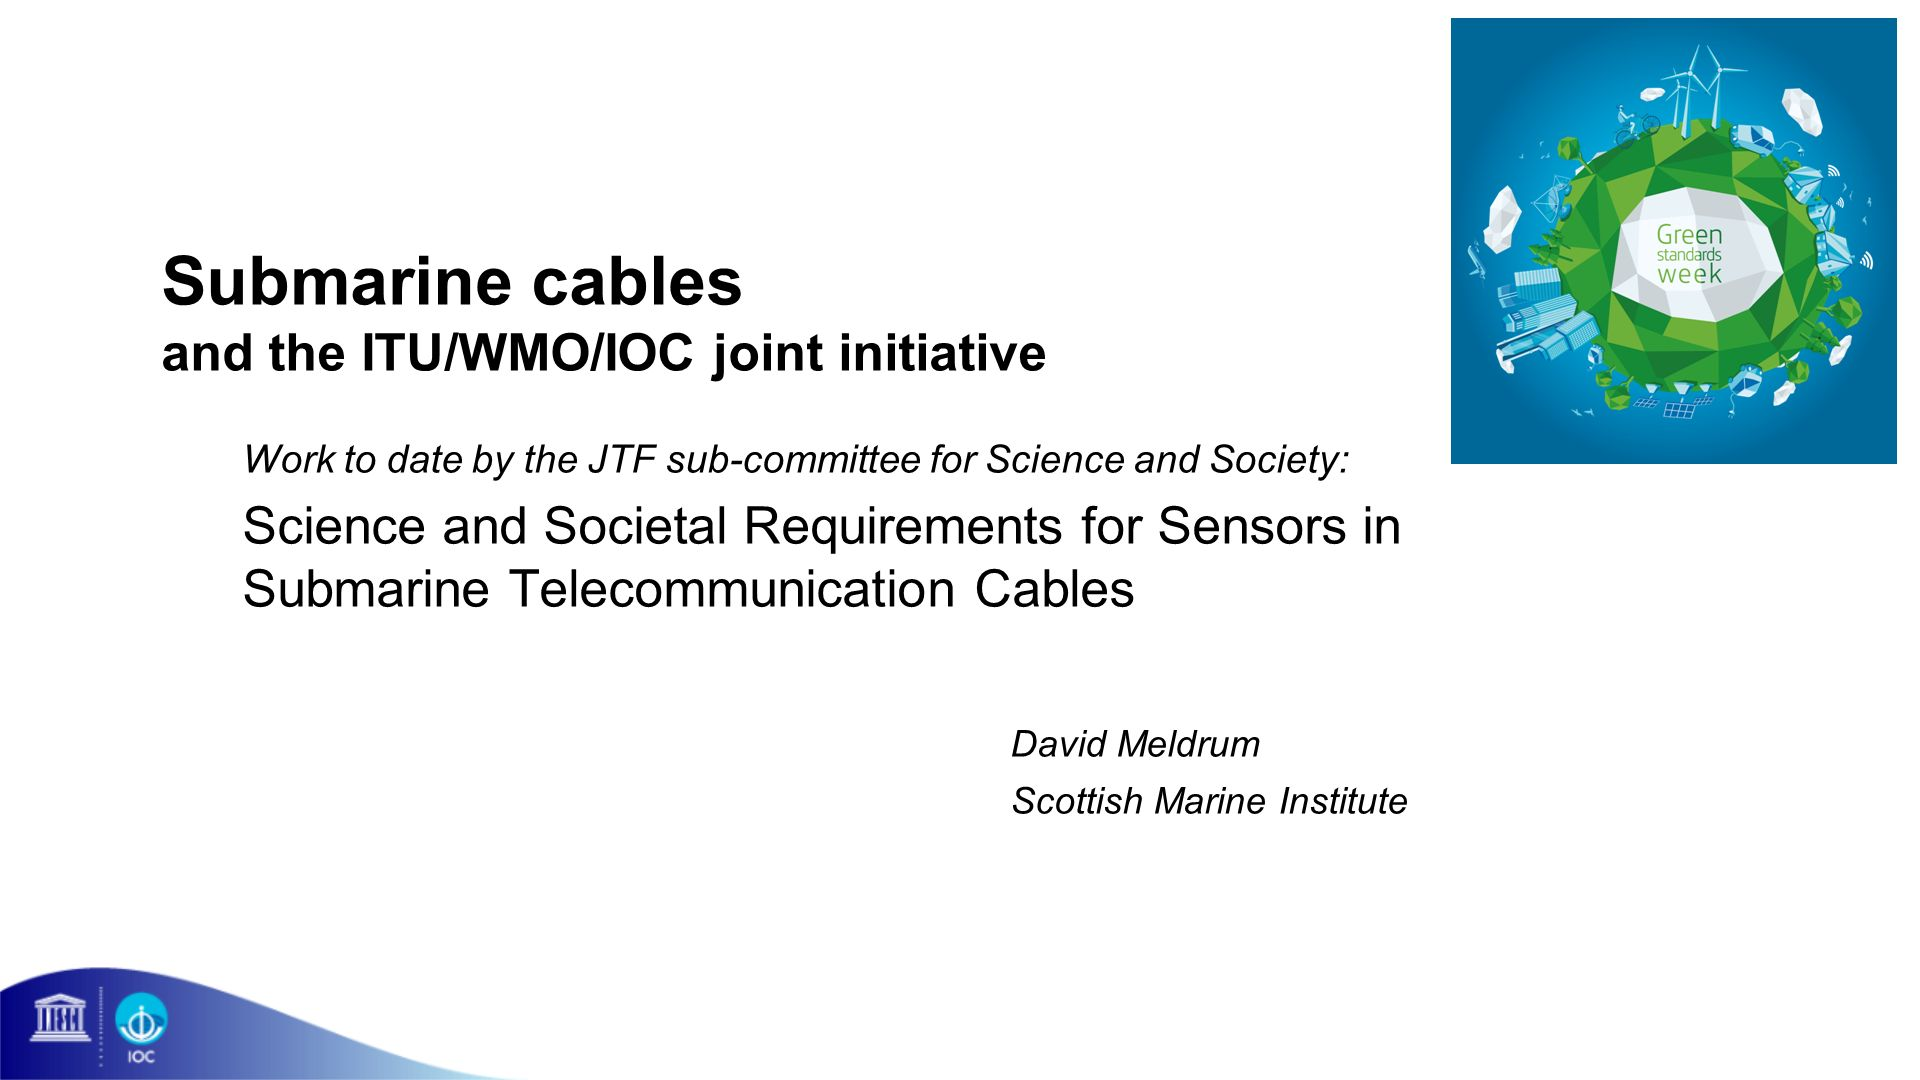 Submarine cables and the ITU/WMO/IOC joint initiative Work to date by the JTF sub-committee for Science and Society: Science and Societal Requirements for Sensors in Submarine Telecommunication Cables David Meldrum Scottish Marine Institute